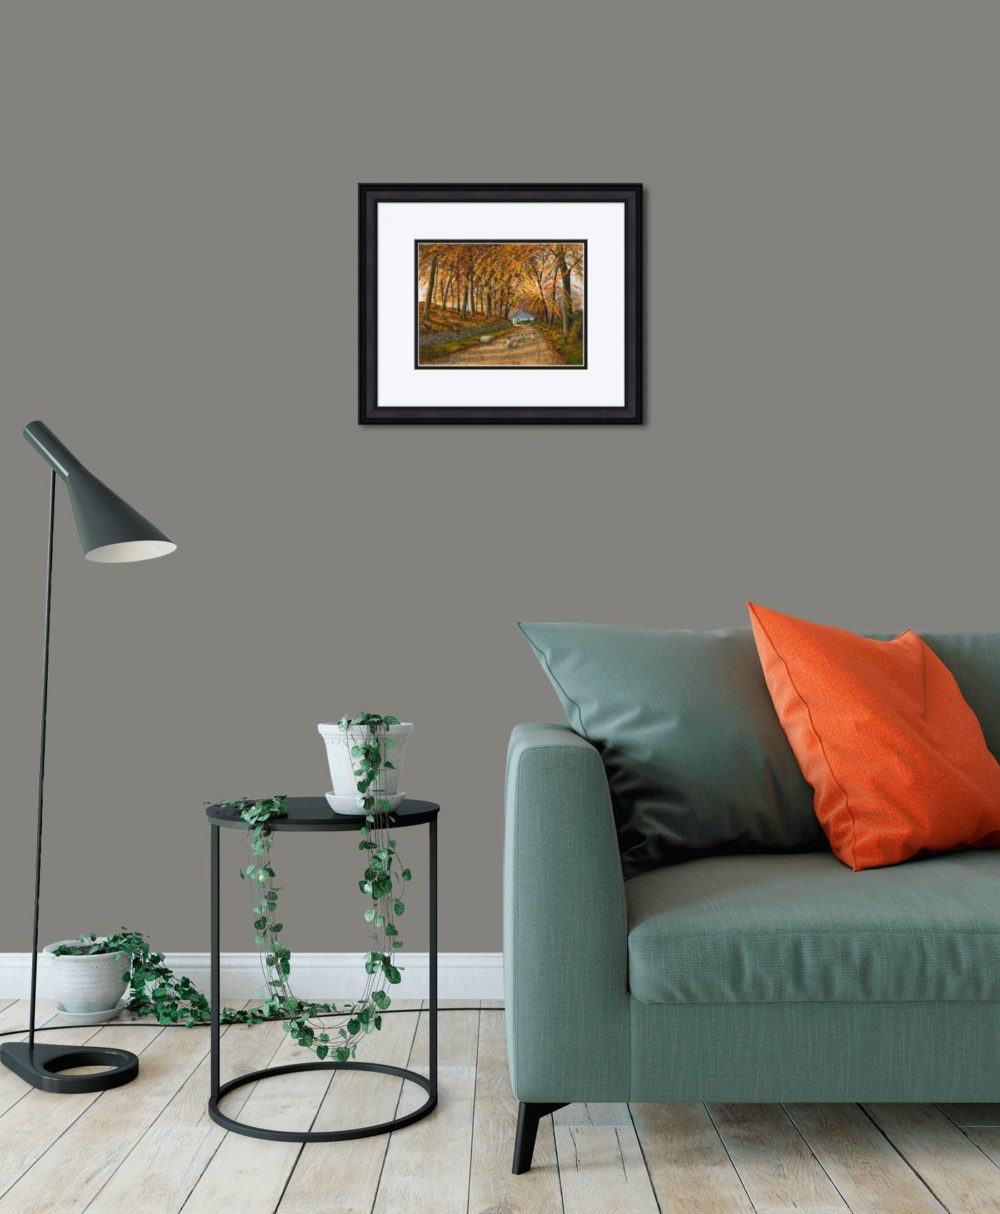 Autumn At Wellbrook Print (Small) in Black Frame in Room